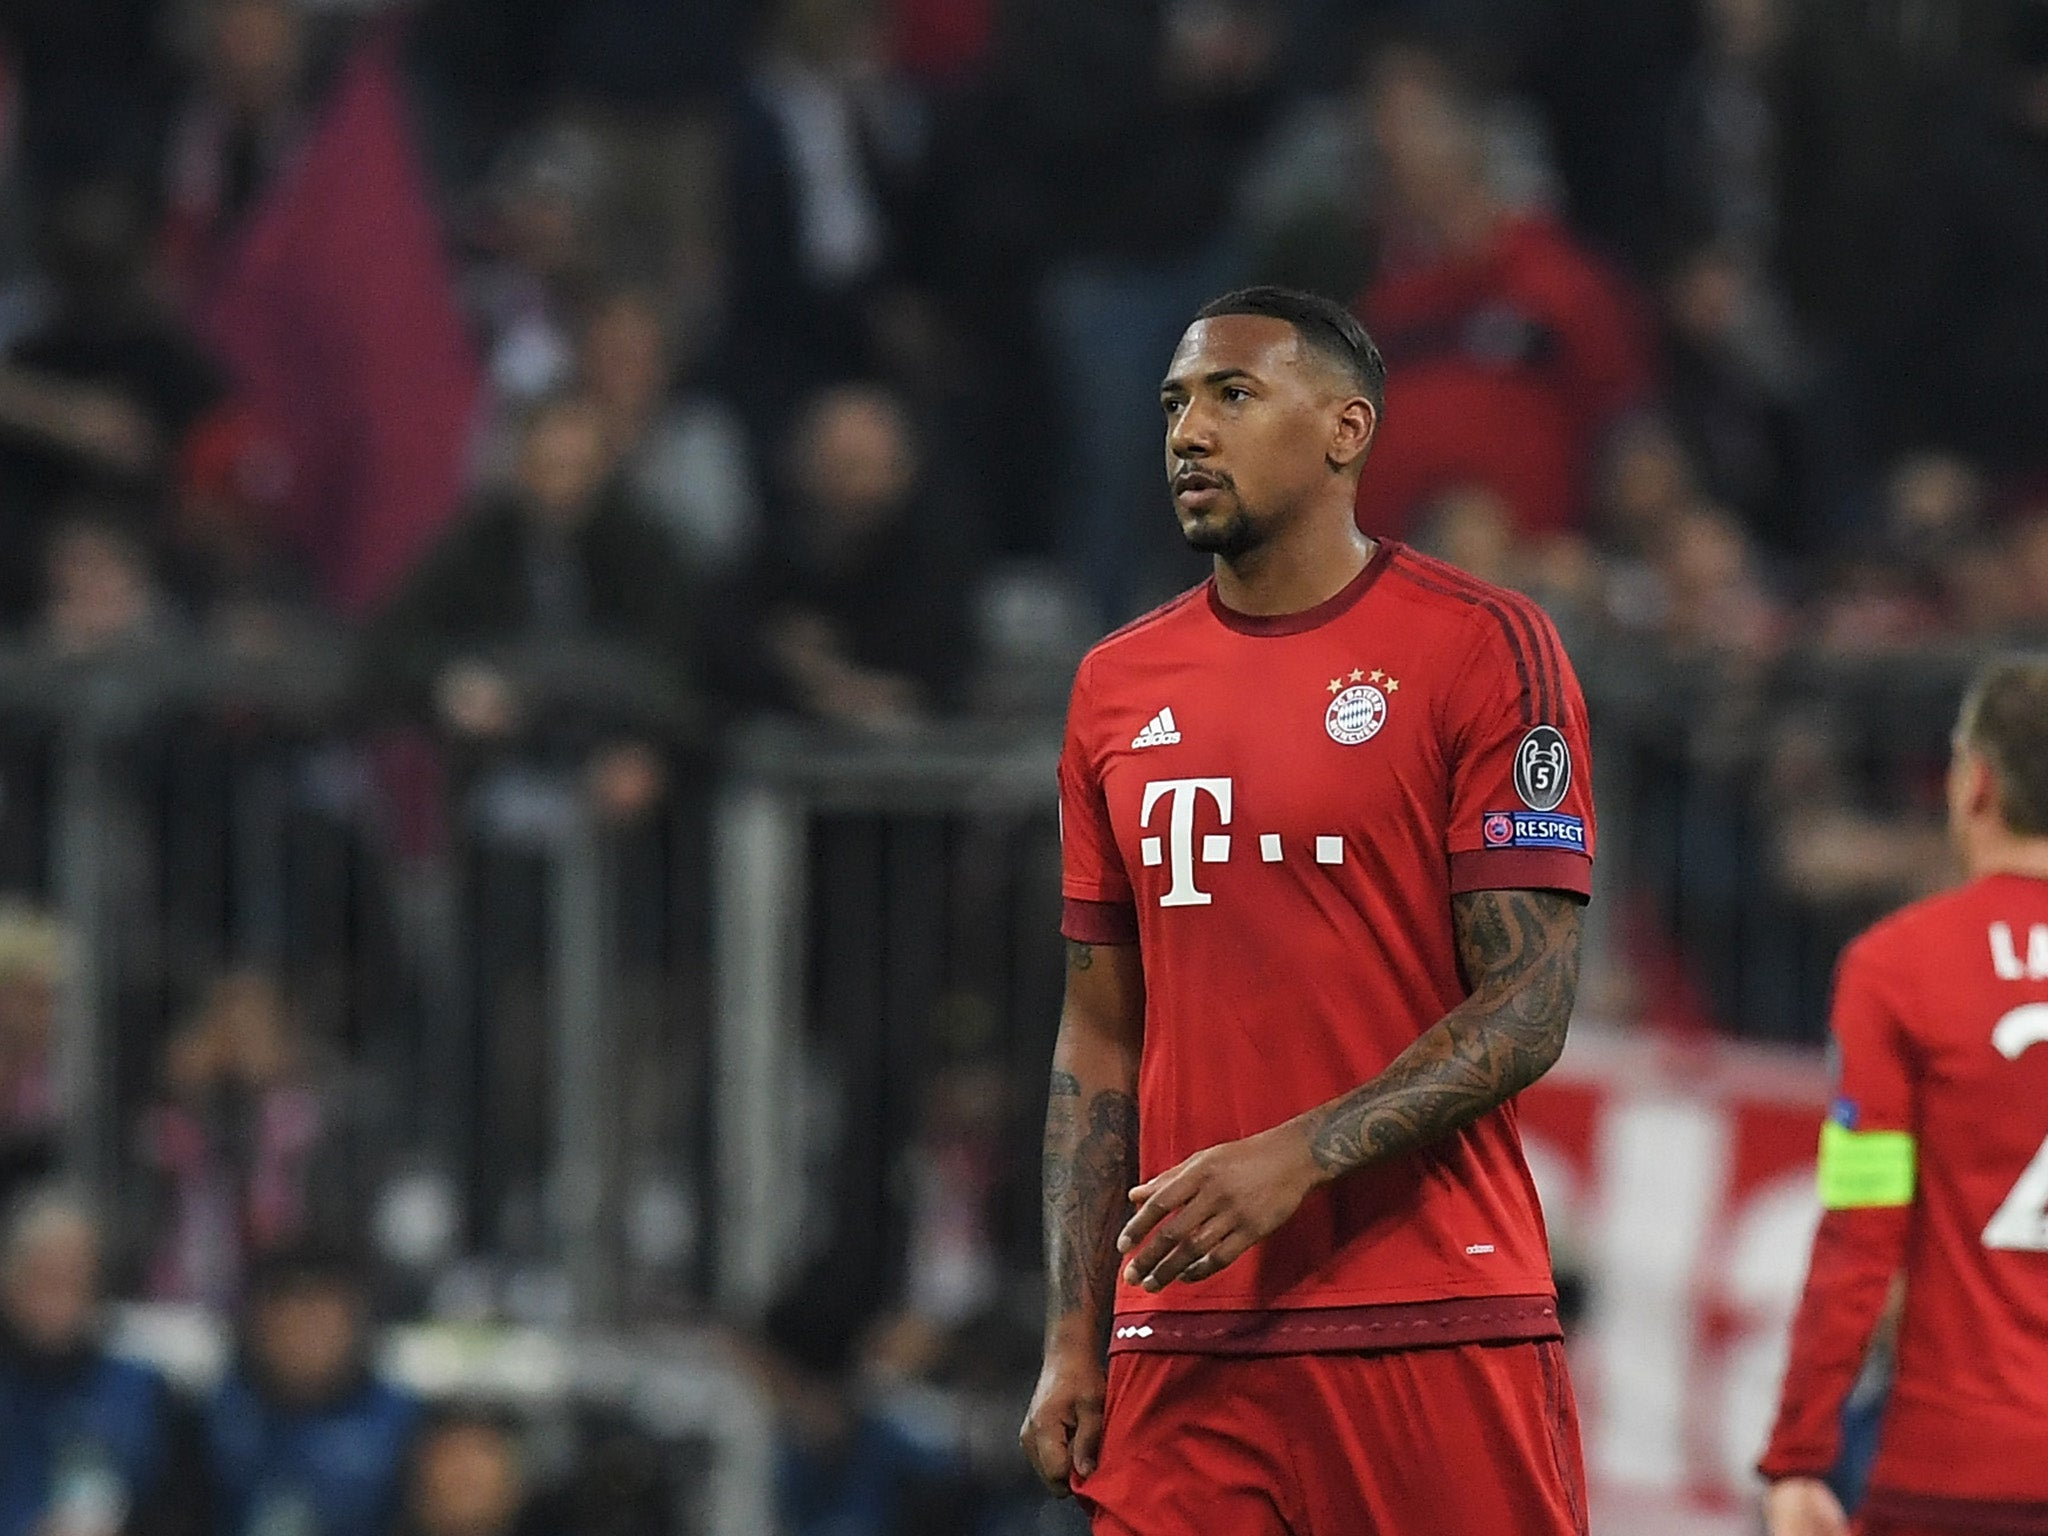 German politician in race row over Jér´me Boateng ments